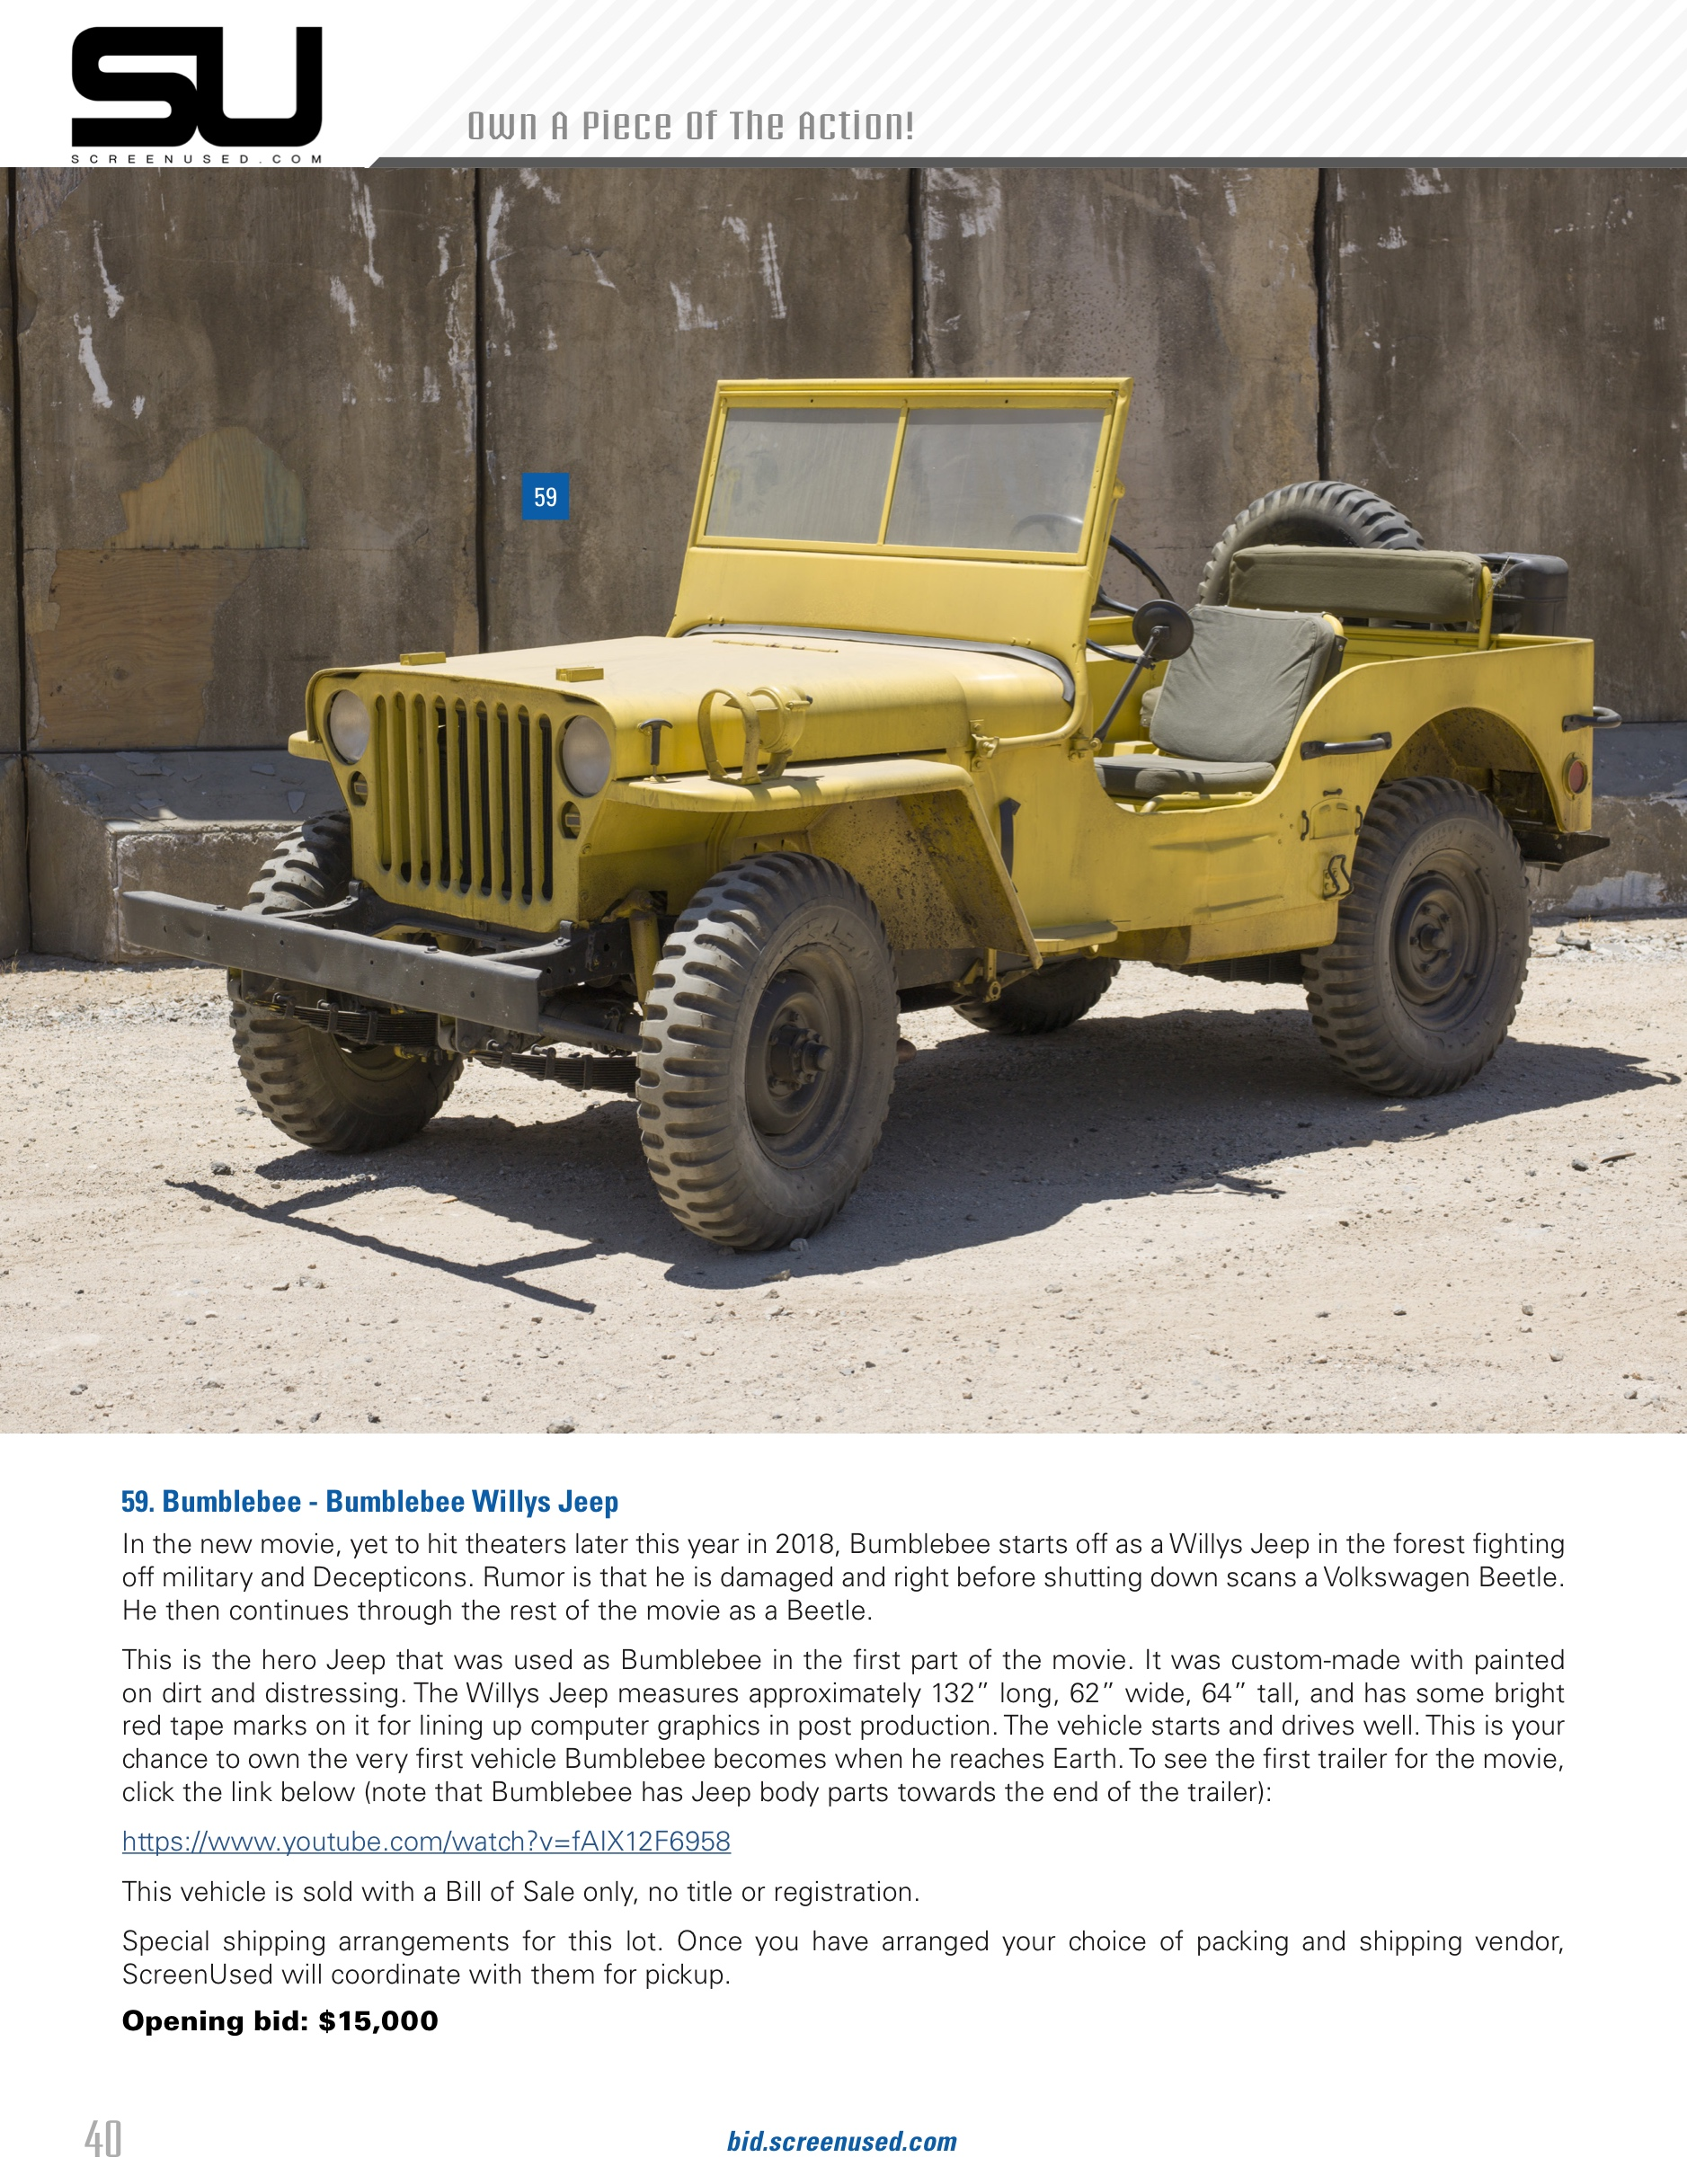 2018 Willys Jeep >> Bumblebee: The Movie - Willys Jeep Bumblebee For Auction - Transformers News - TFW2005